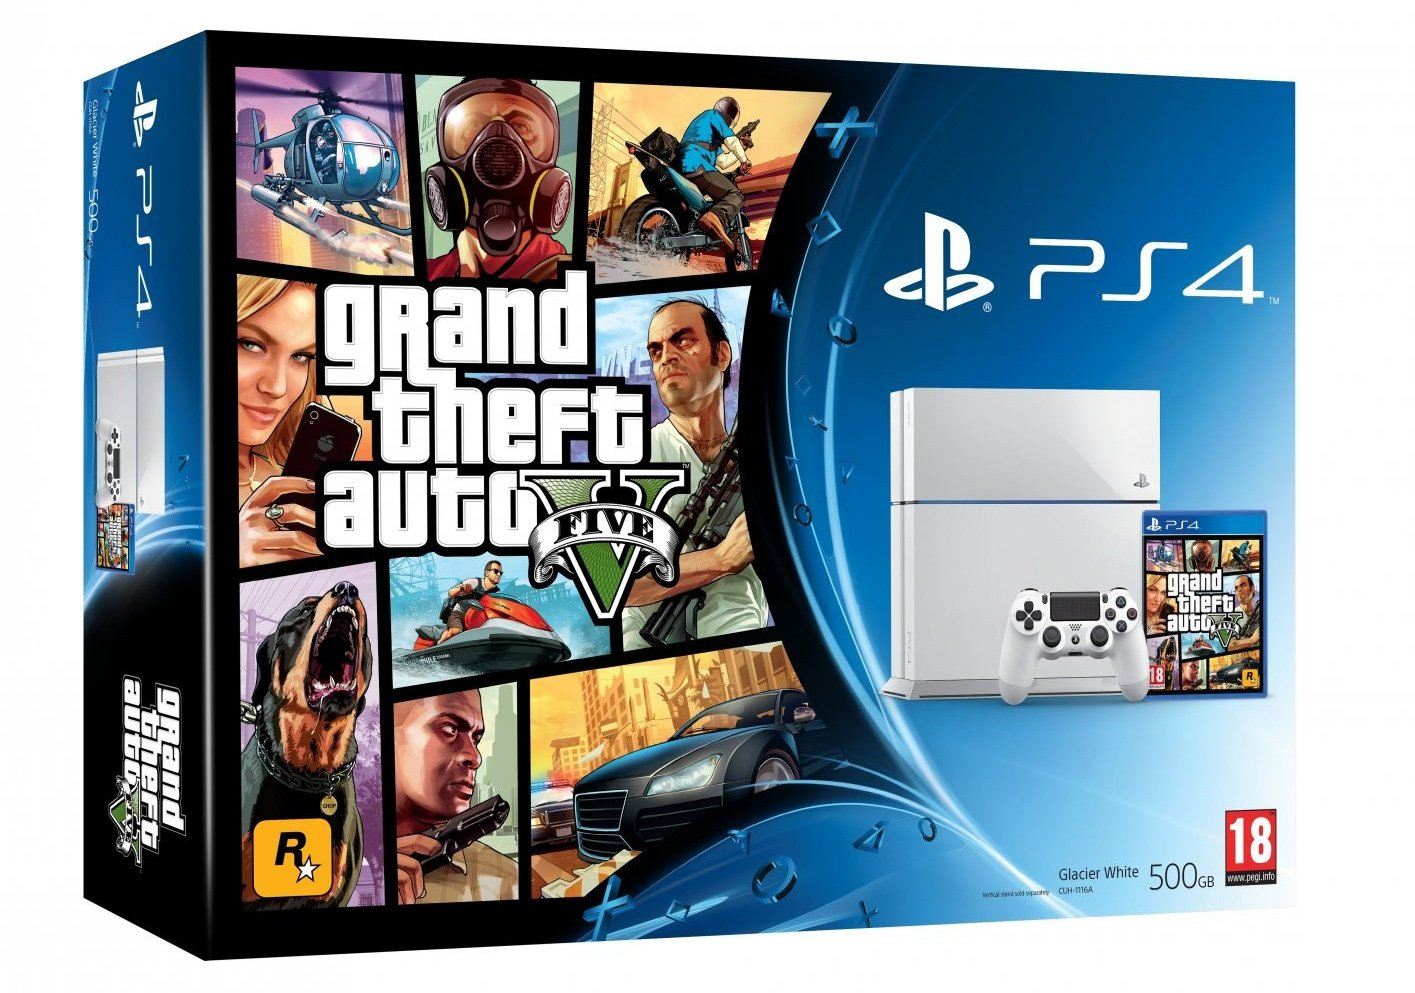 PlayStation 4 500 GB Grand Theft Auto V Bundle Glacier White